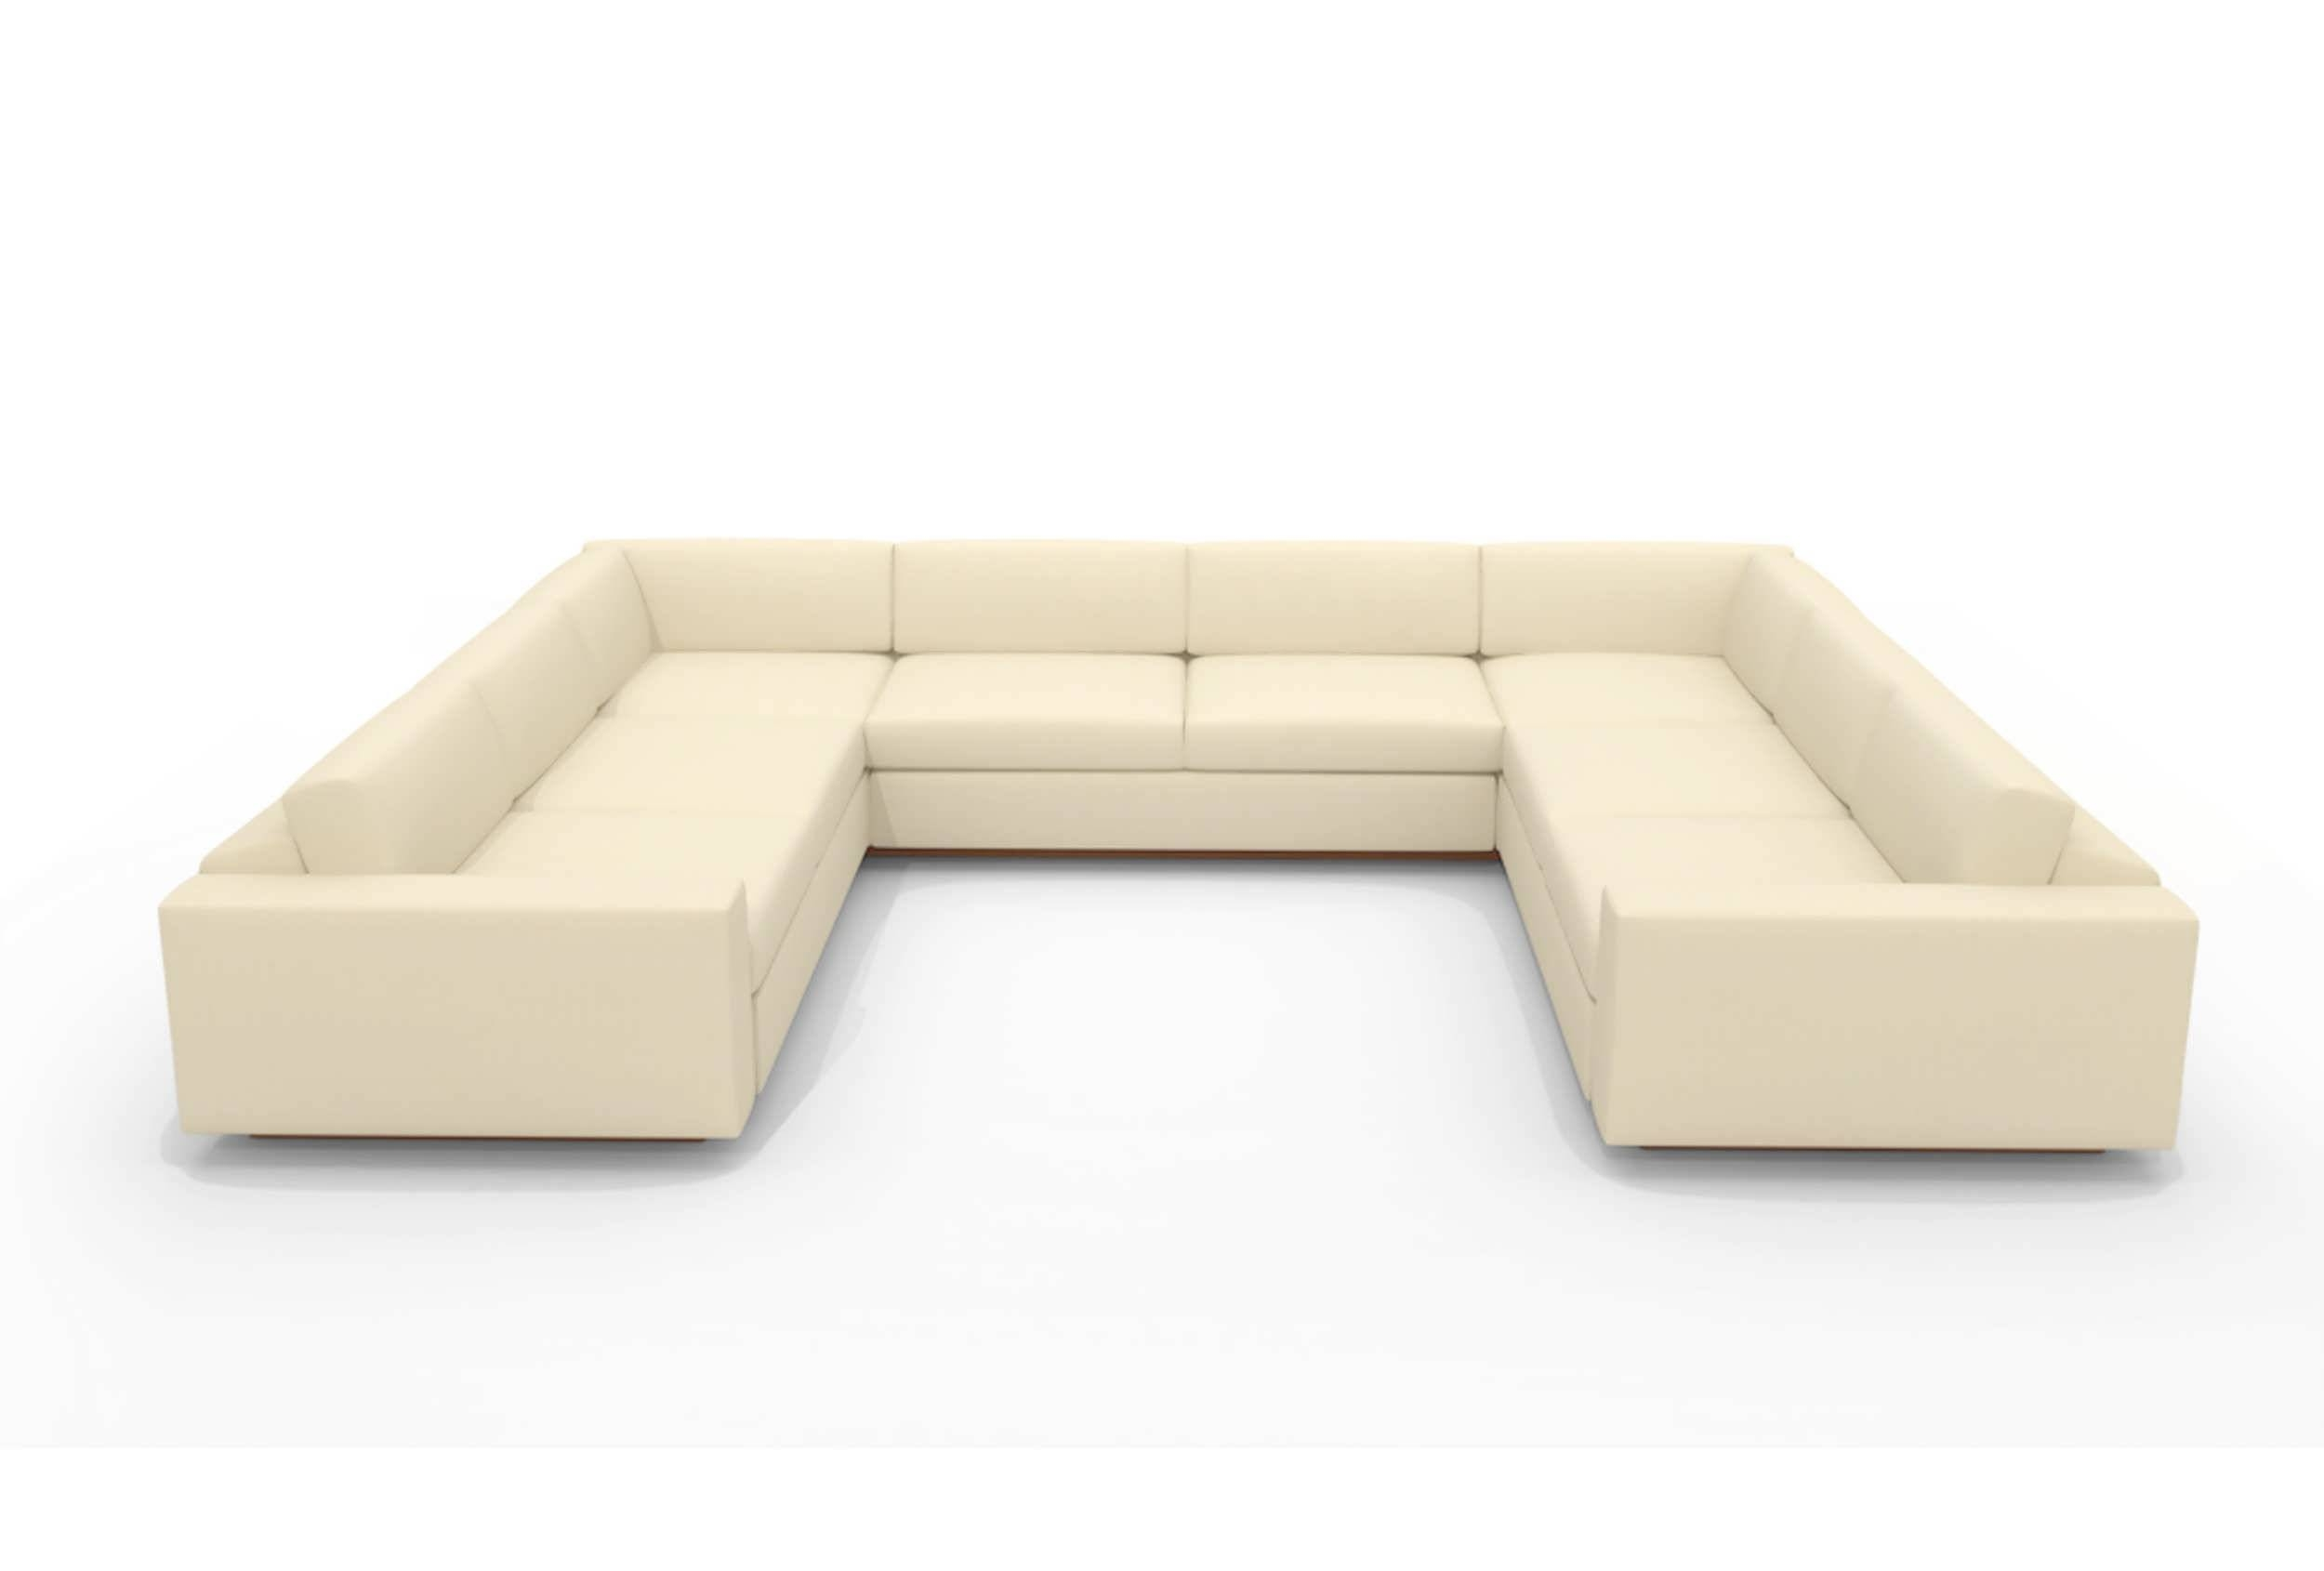 Sofa : 3 Piece Sectional Sofa Most Comfortable Sectional Gray pertaining to Small L-Shaped Sectional Sofas (Image 14 of 15)